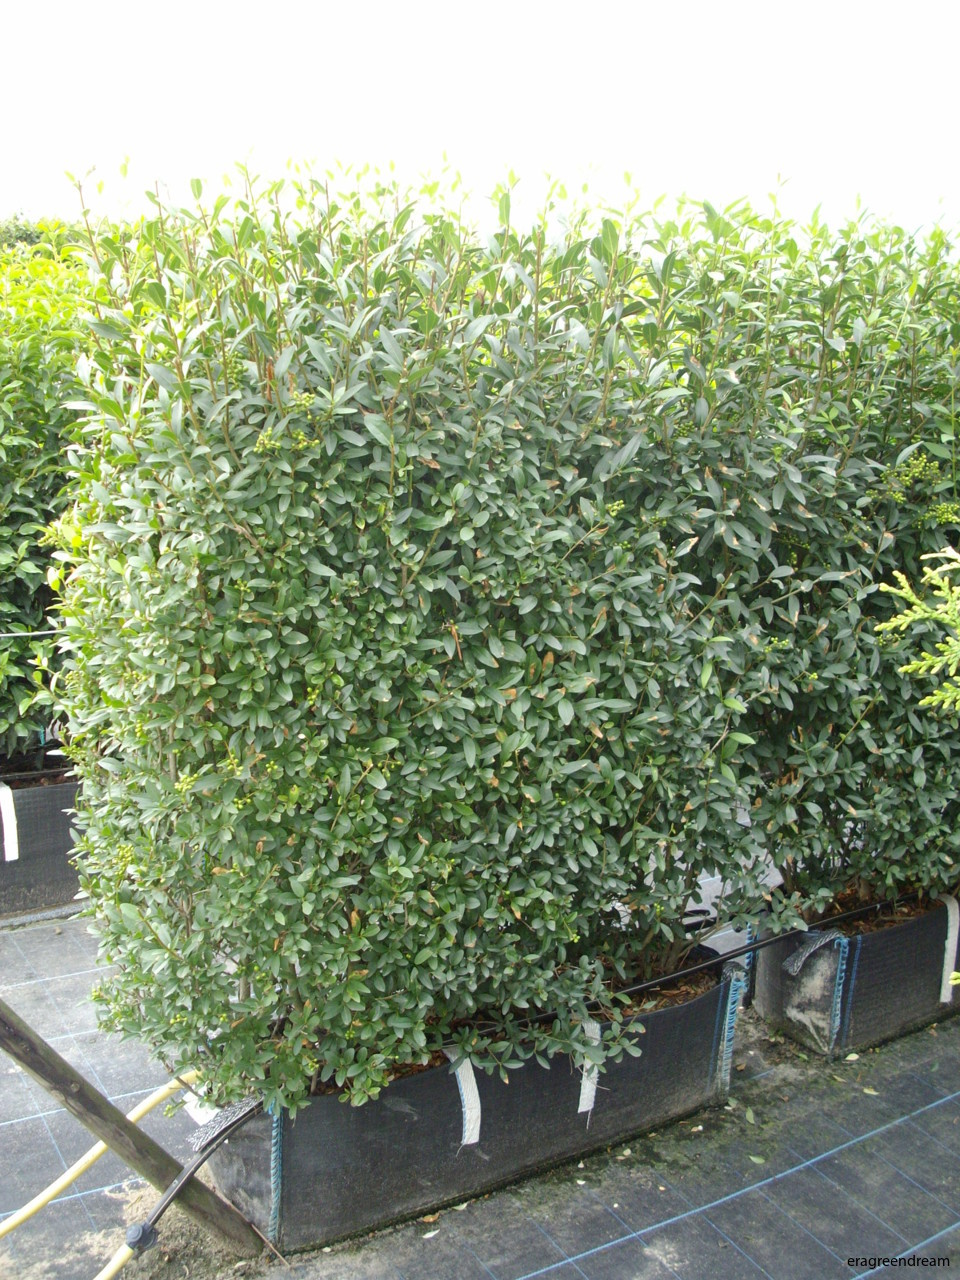 20-8-13 Ligustrum vulgaris Readybag (1)